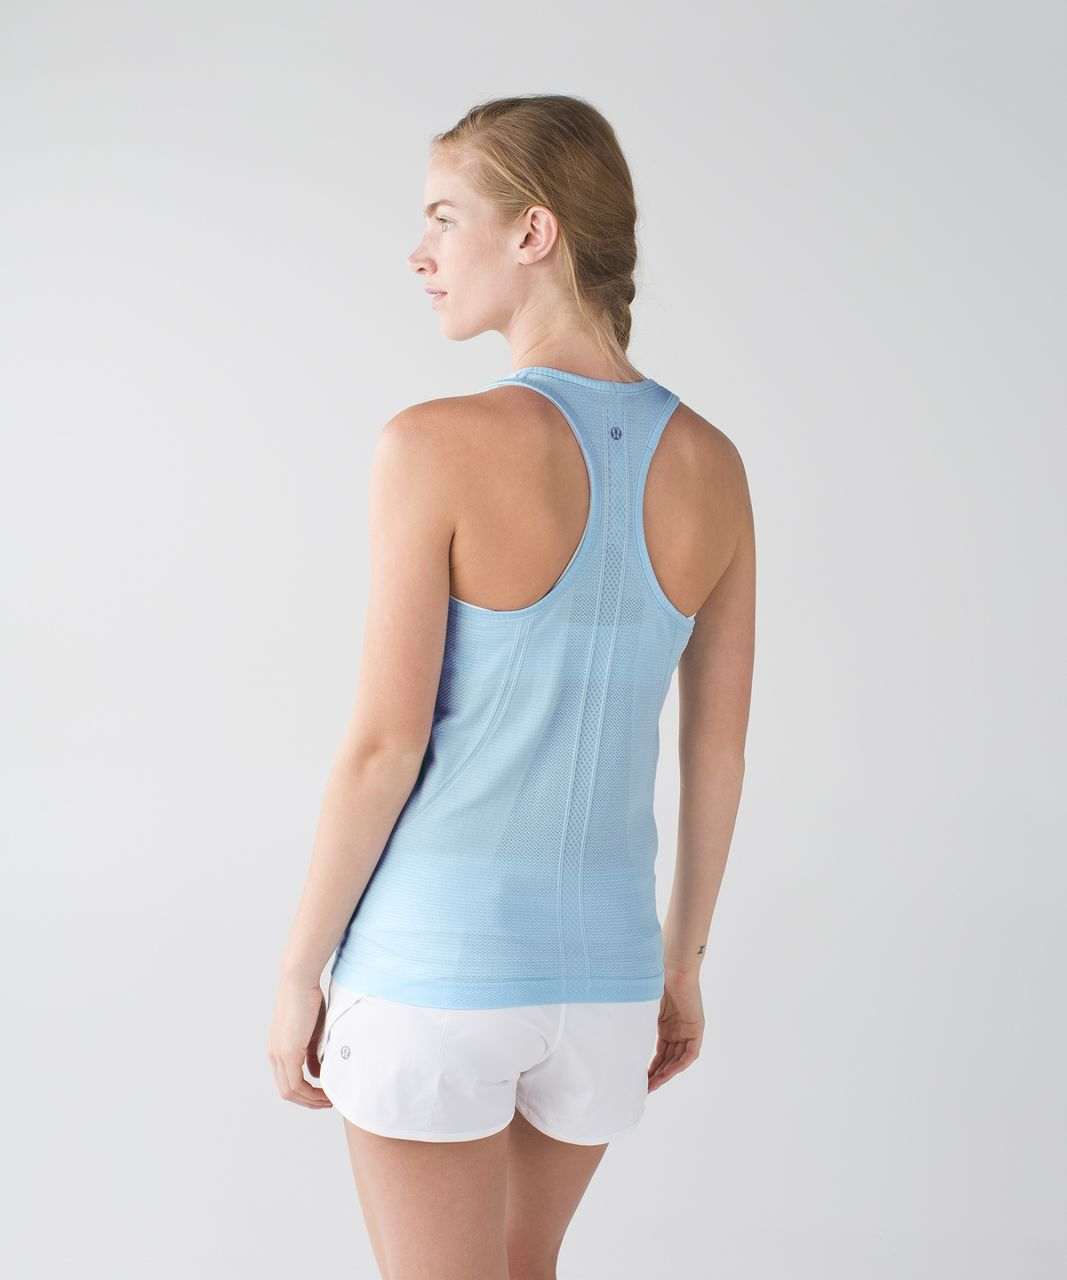 Lululemon Swiftly Tech Racerback - Heathered Caspian Blue